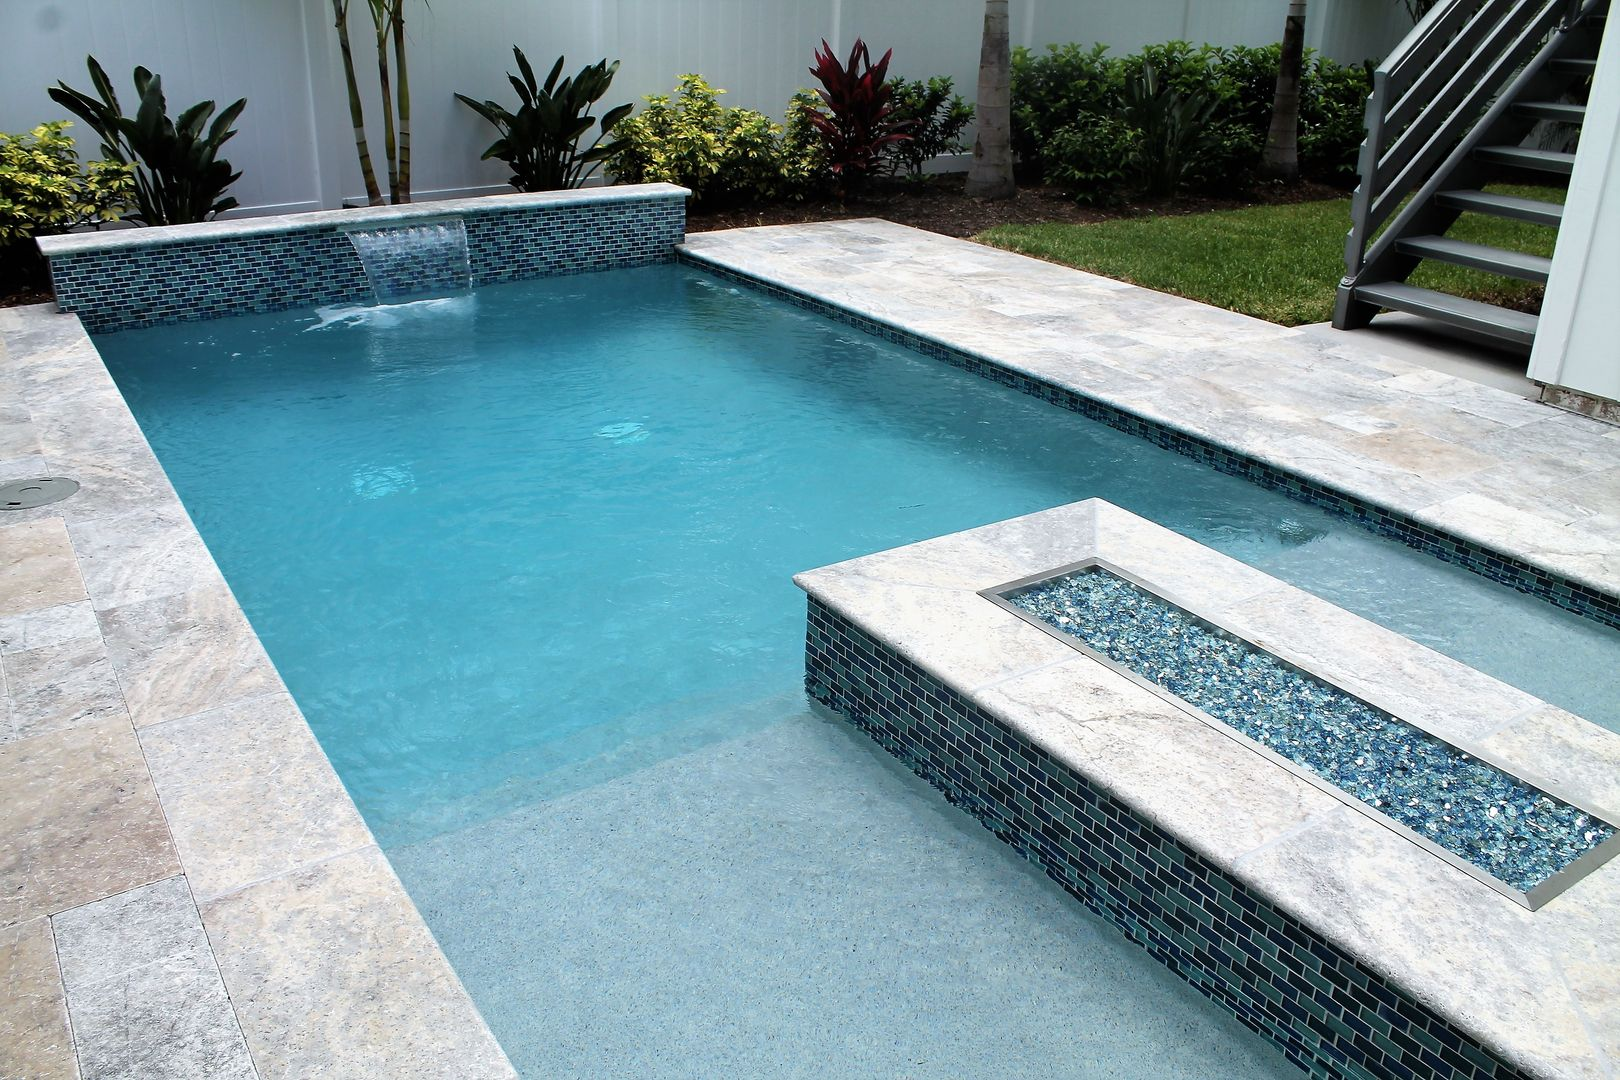 Pools By Design Fl Builds New Pools And Spas To Suit Every